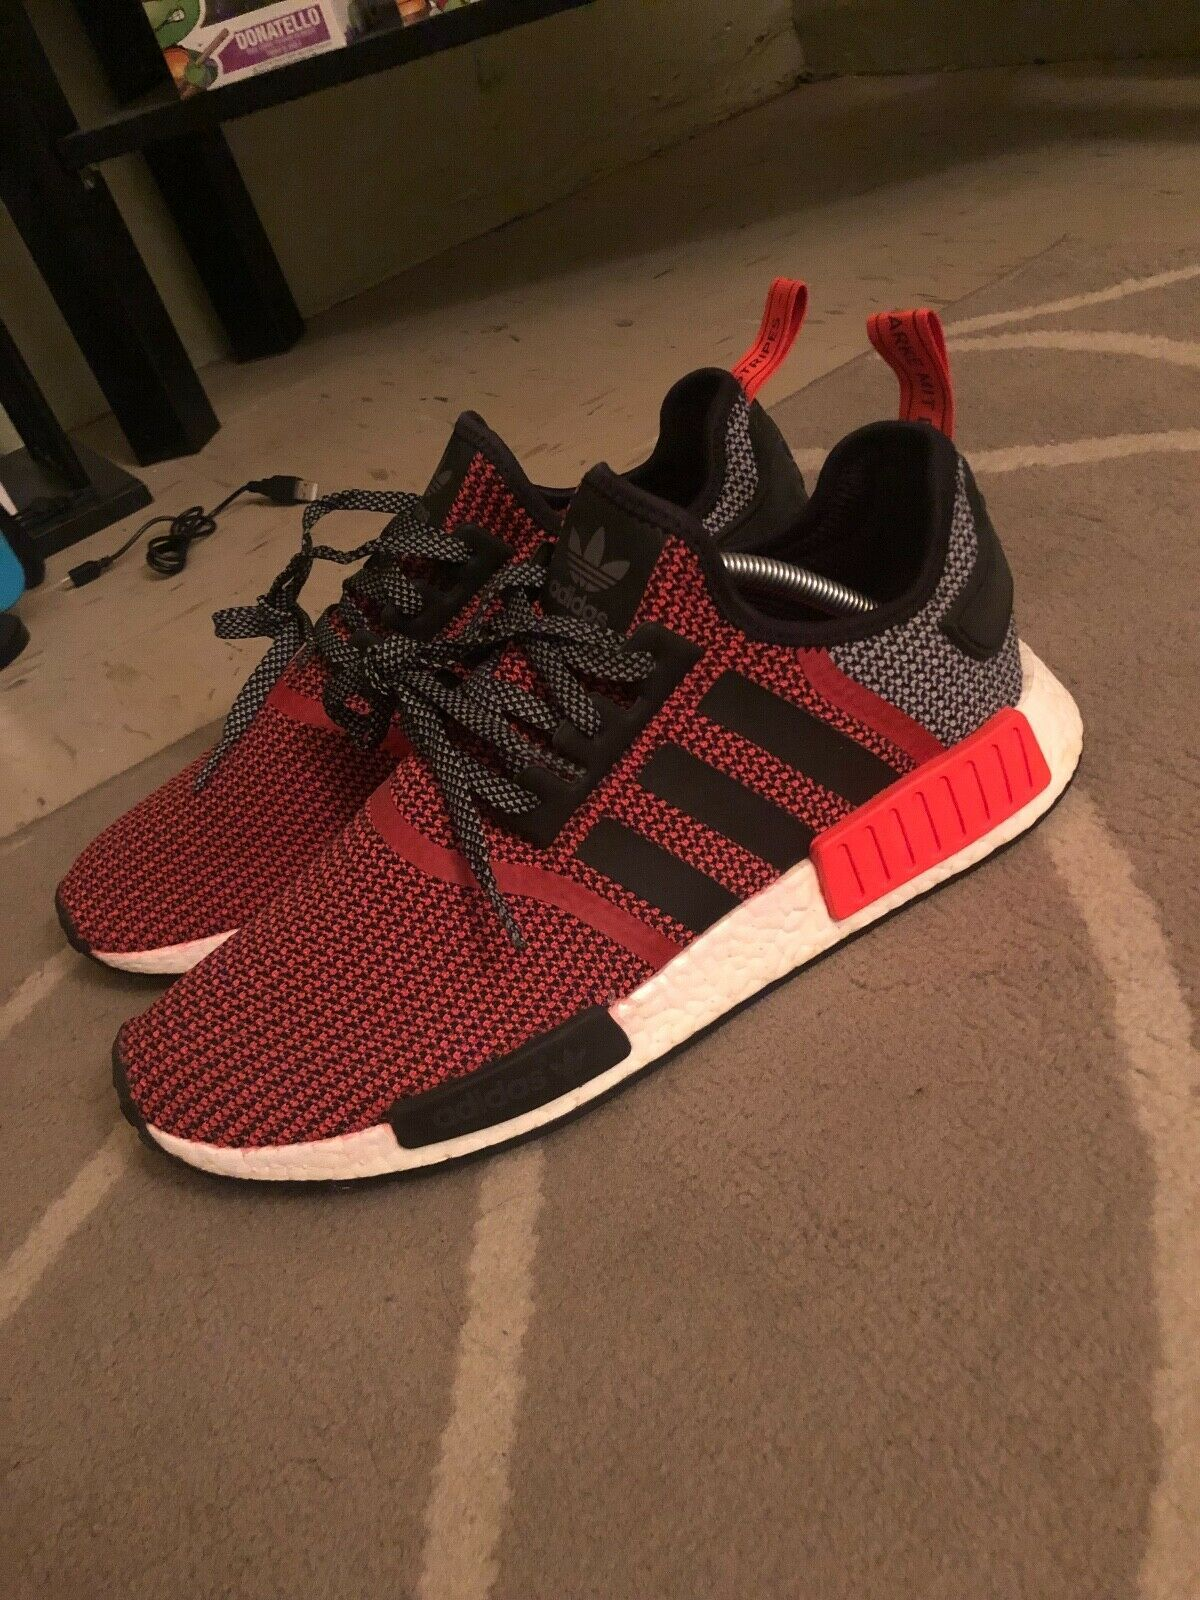 db6a9712fe2 2016 Adidas NMD R1 Lush Red SZ 11 KITH YEEZY SUPREME OFF-WHITE JORDAN BOOST  700. Find this Pin and ...